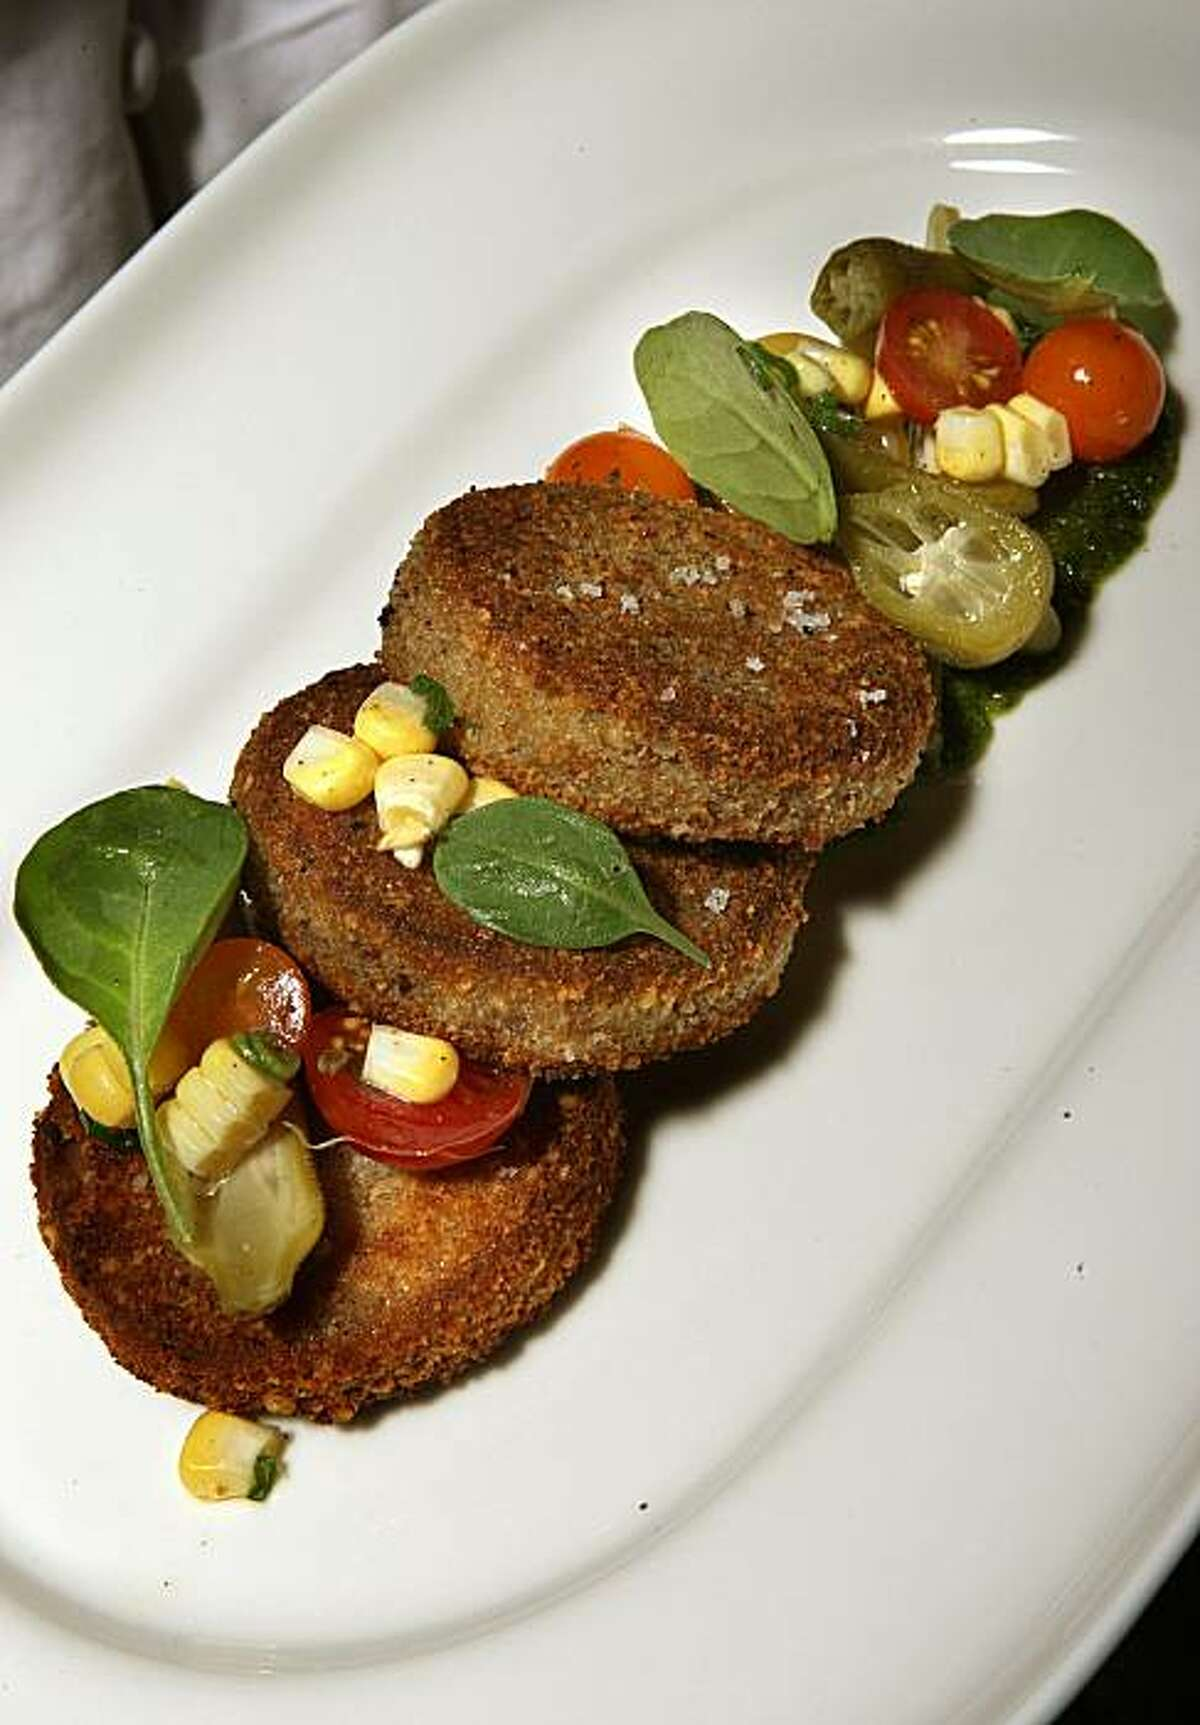 Matthew Accarino's dish -- Halibut Croquetti with Arugula pesto and pickled okra, corn and tomato relish-- in San Francisco, Calif., on Wednesday, July 28, 2010.